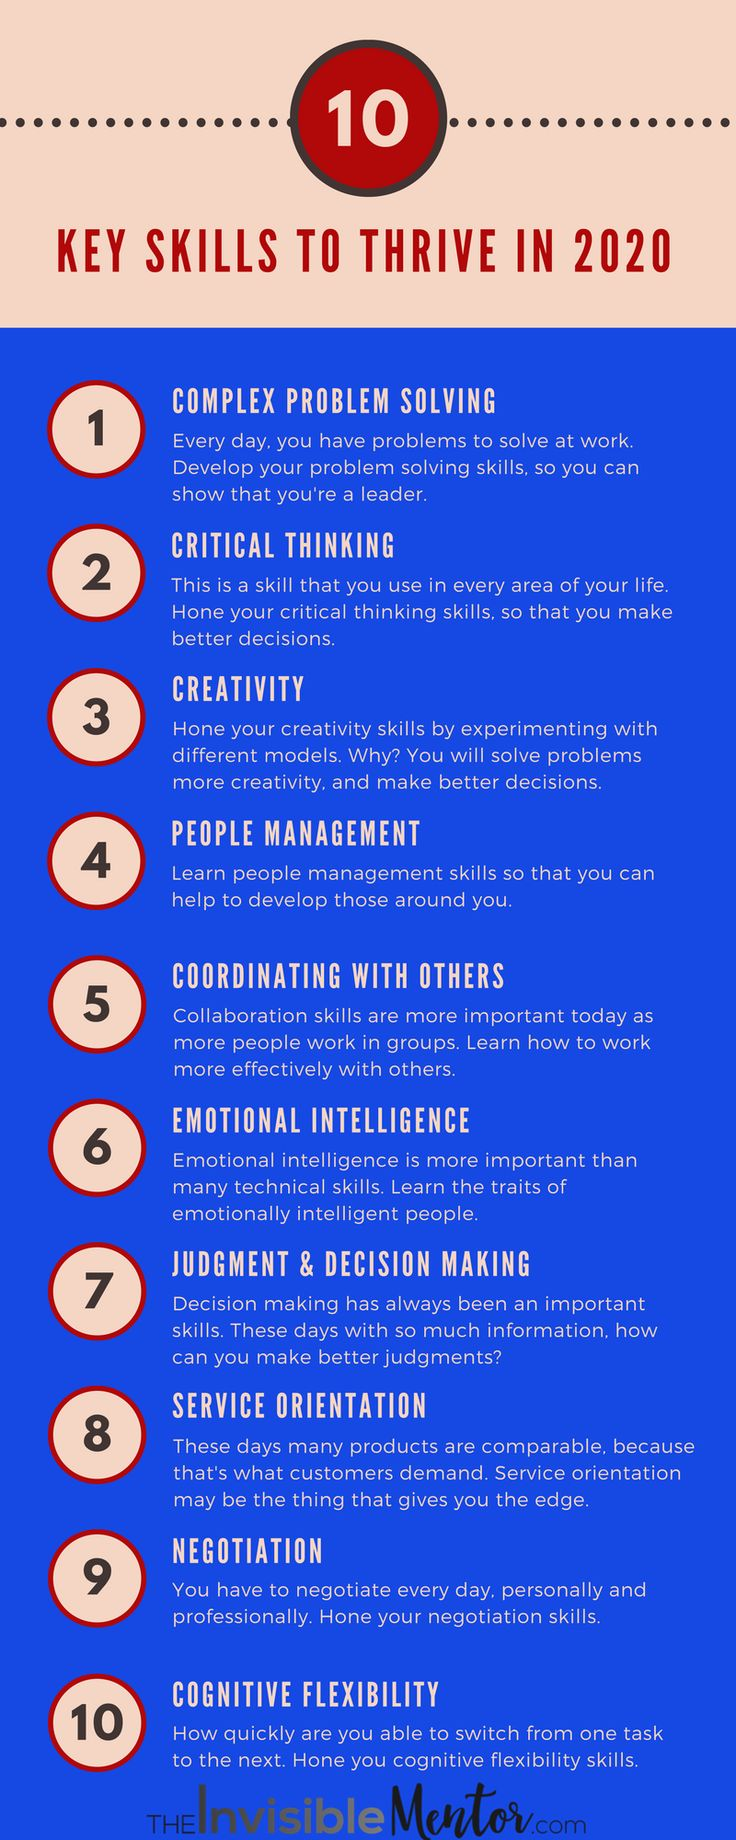 The World Economic Forum says that you need 10 key skills to thrive in 2020. How do you plan to learn the 10 skills? This infographic tells you for the 10 key employability skills are.